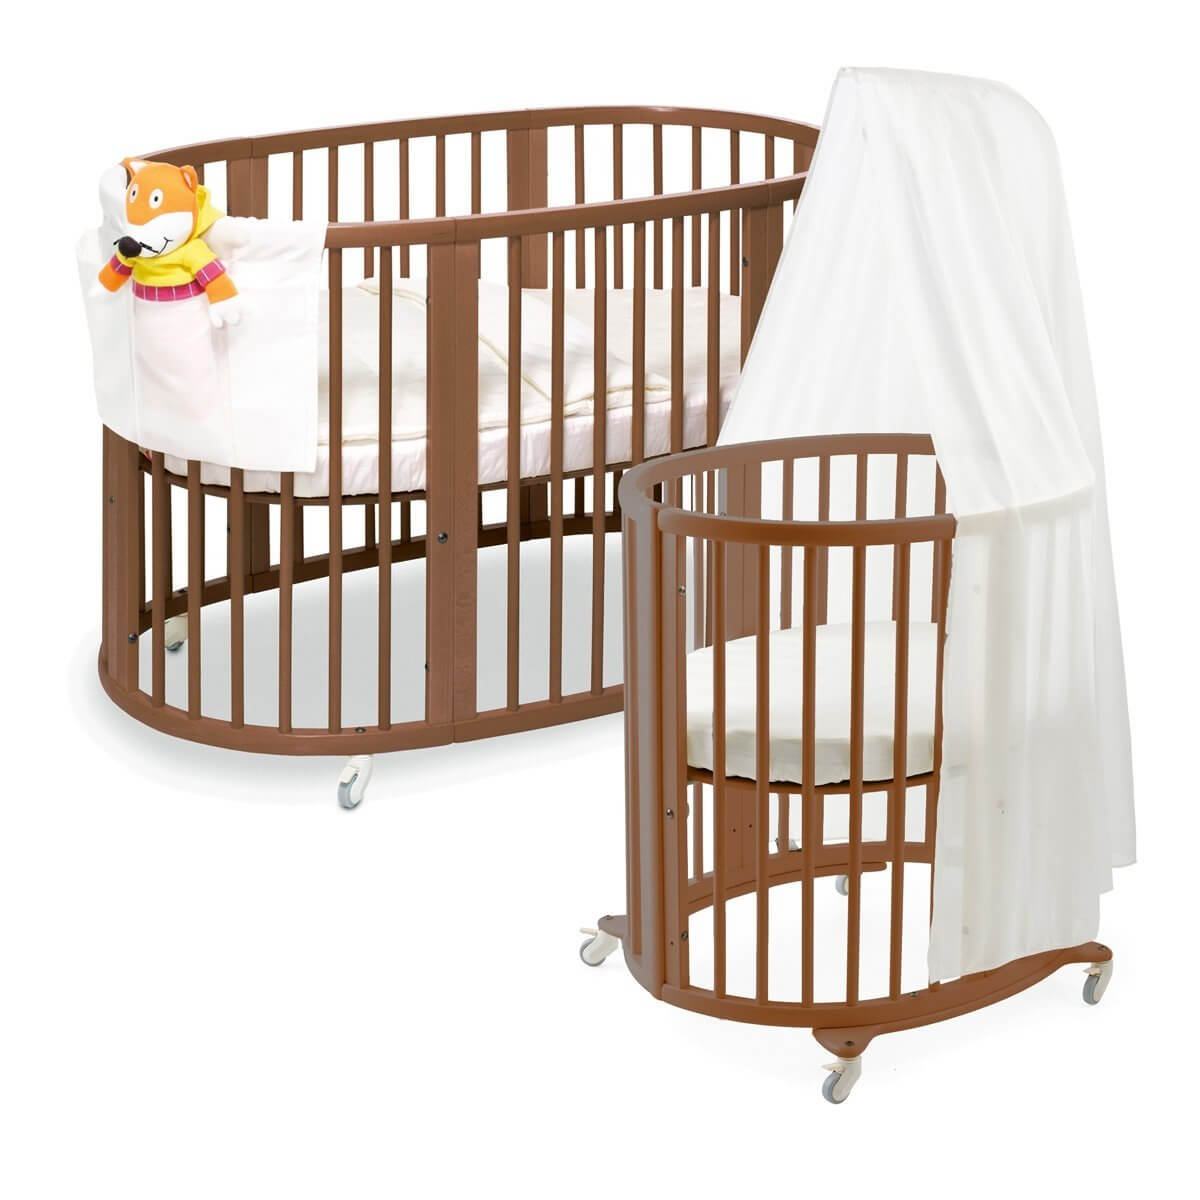 Crib for sale in olongapo - This Lengthy Oval Crib From Stokke Is Designed To Grow With Your Child Initial Circular